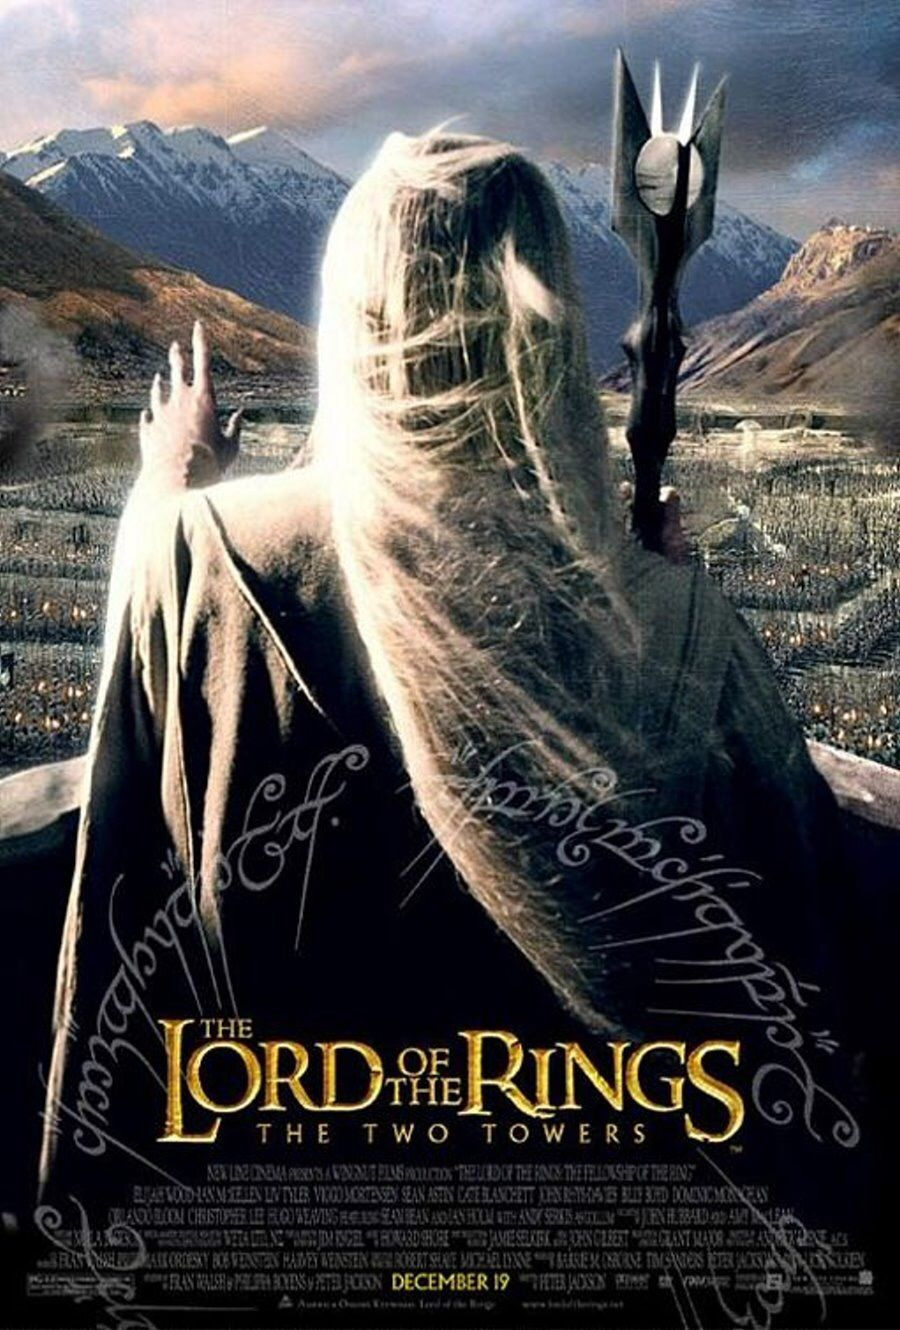 Pin By Amber Beasley On Movies Watched 2019 The Two Towers Lord